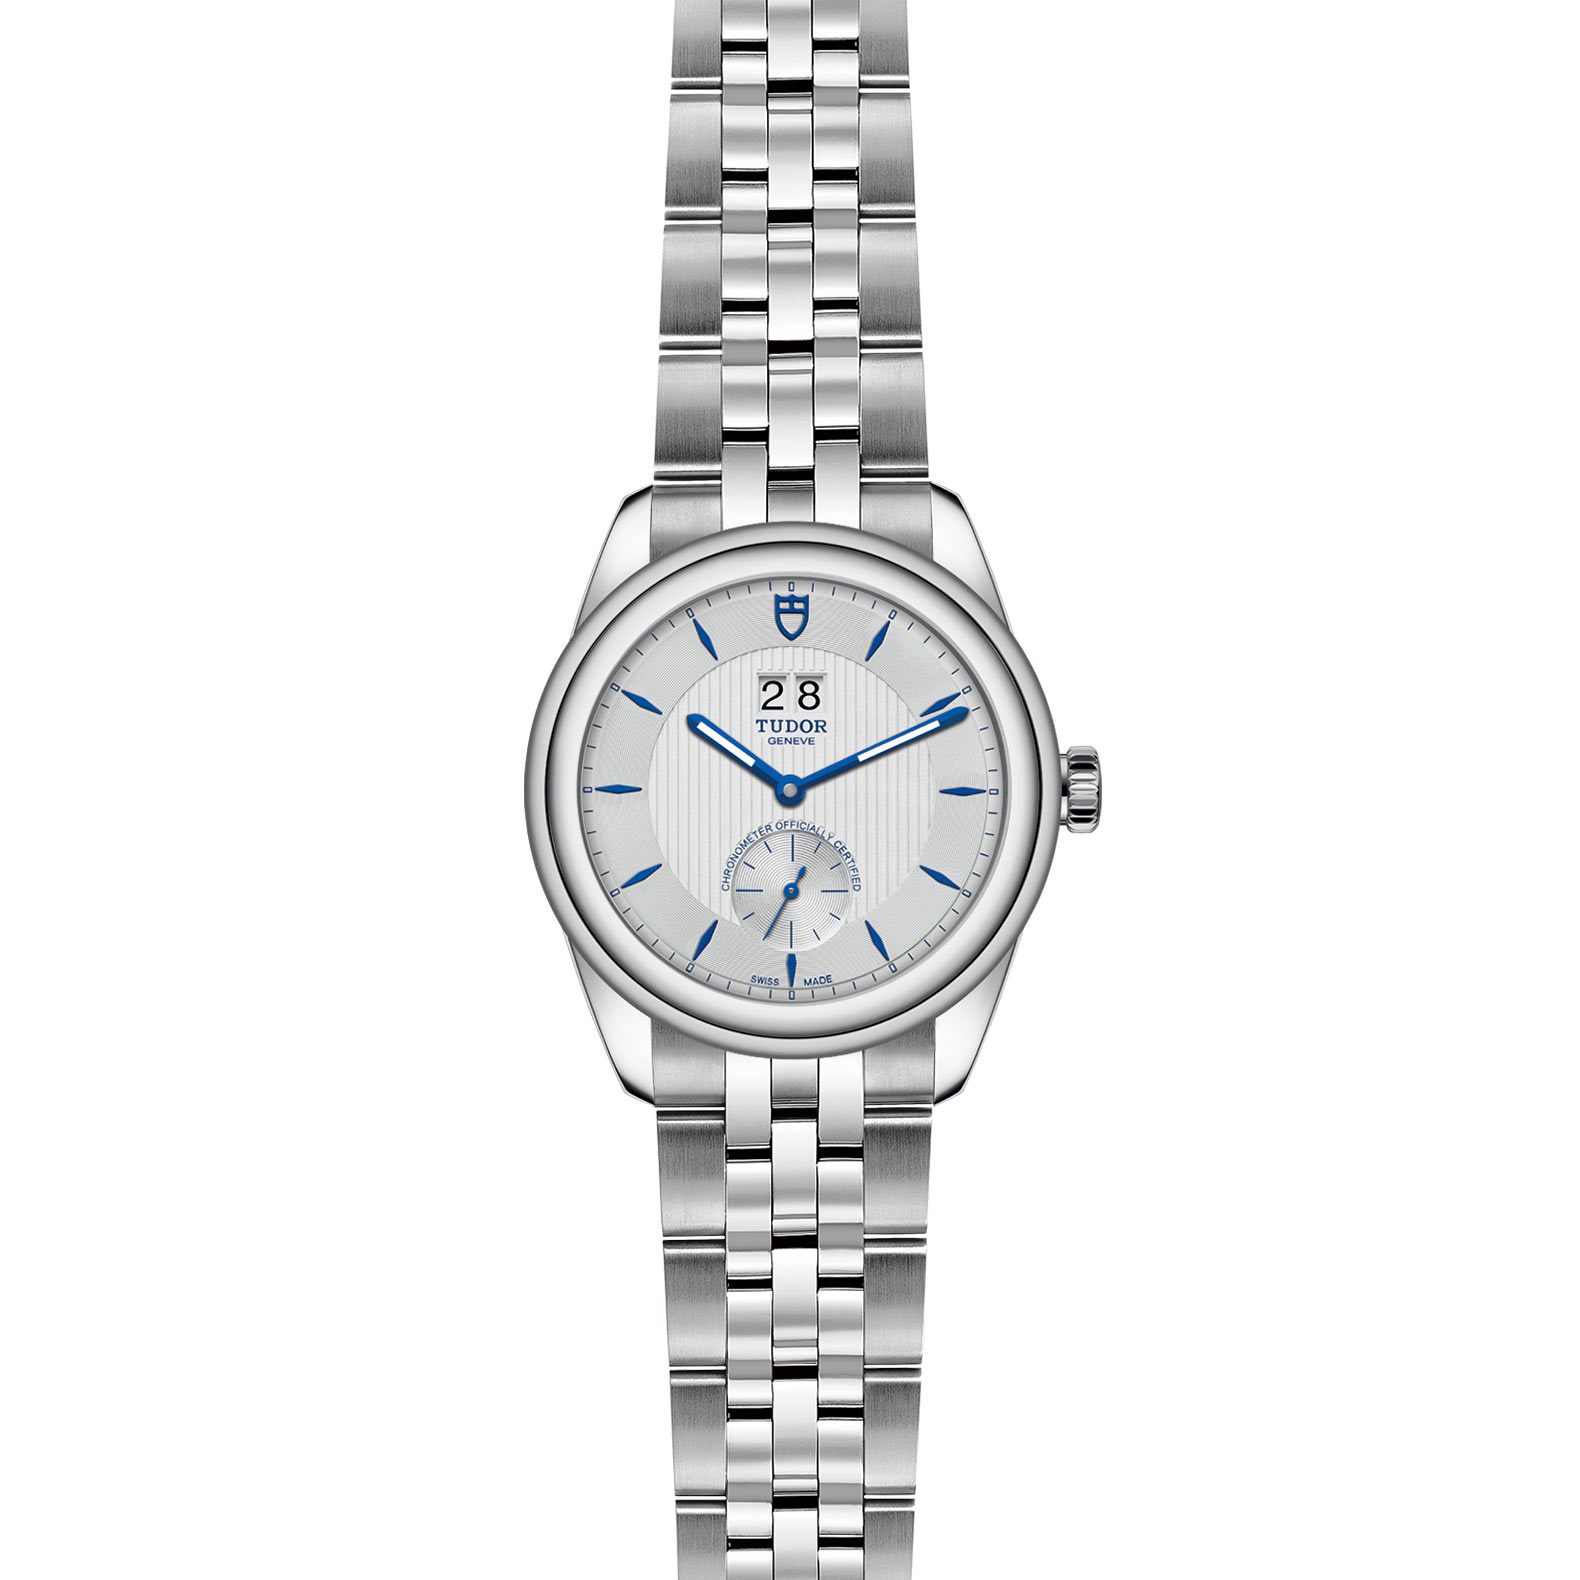 TUDOR Glamour Double Date M57100 0001 Frontfacing